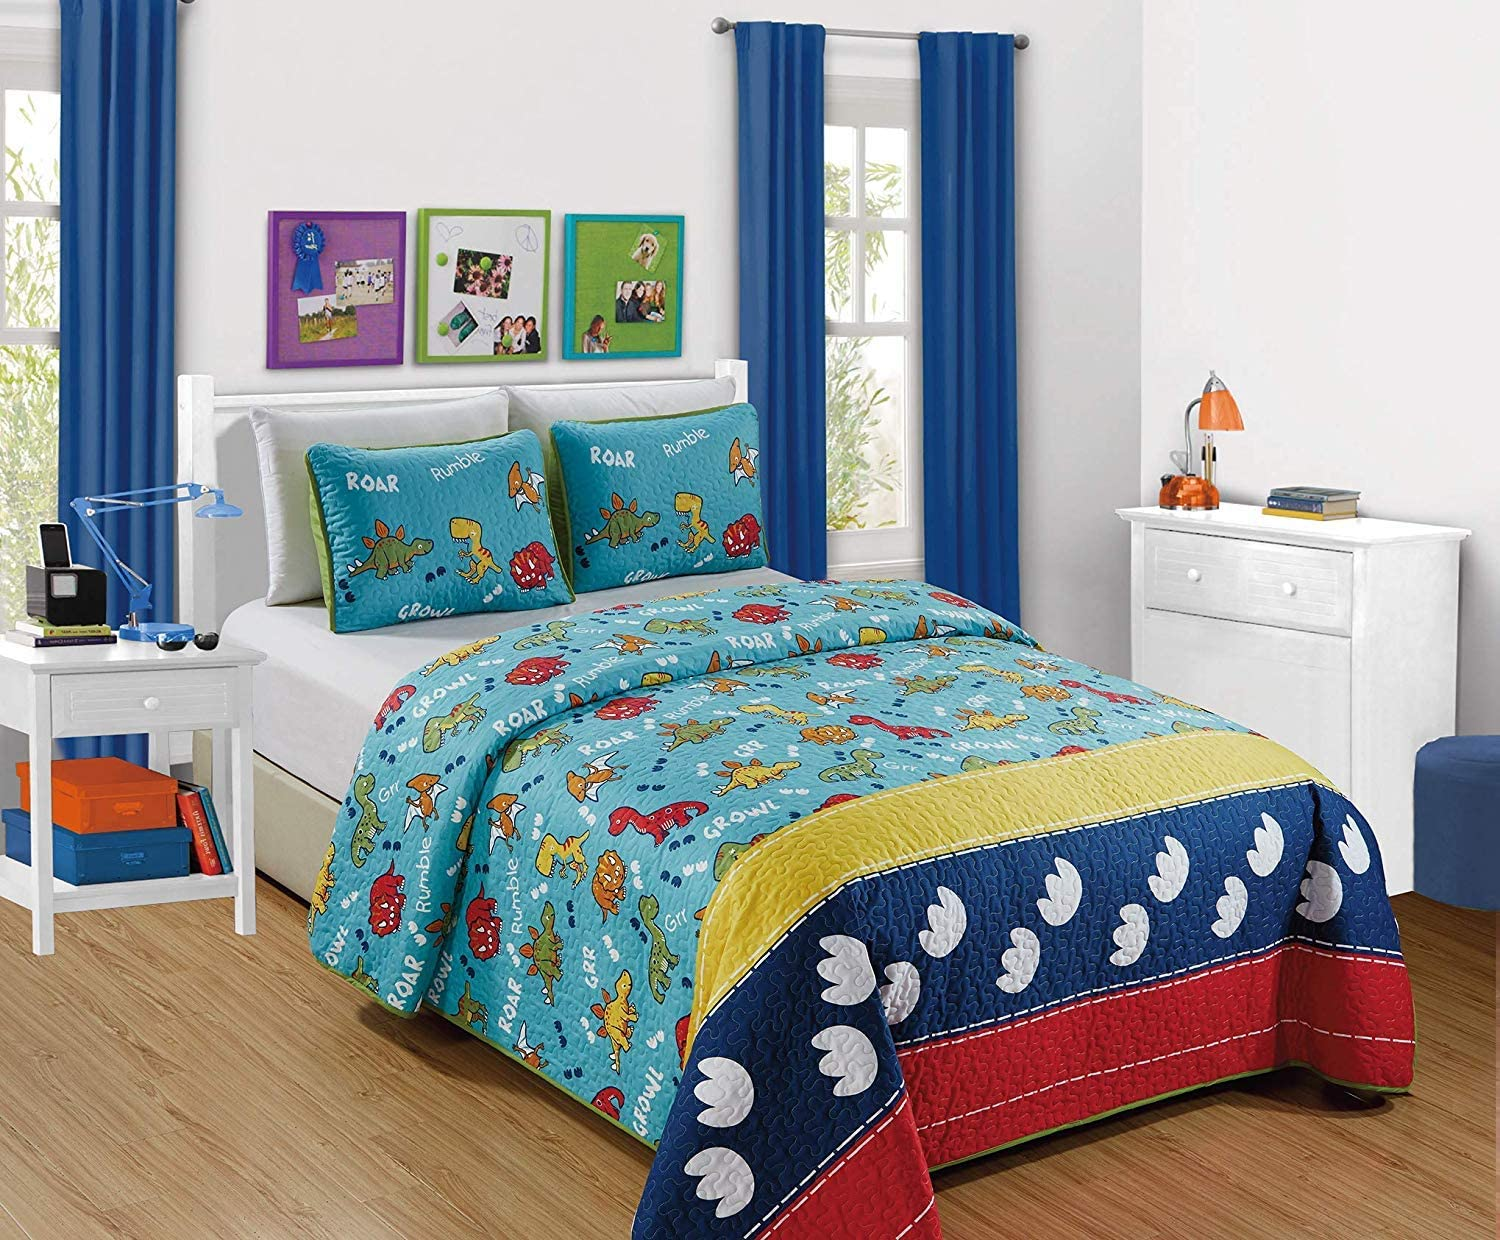 Luxury Home Collection Kids 2 Very popular! OFFicial Coverlet Bedspread Twin Piece Size